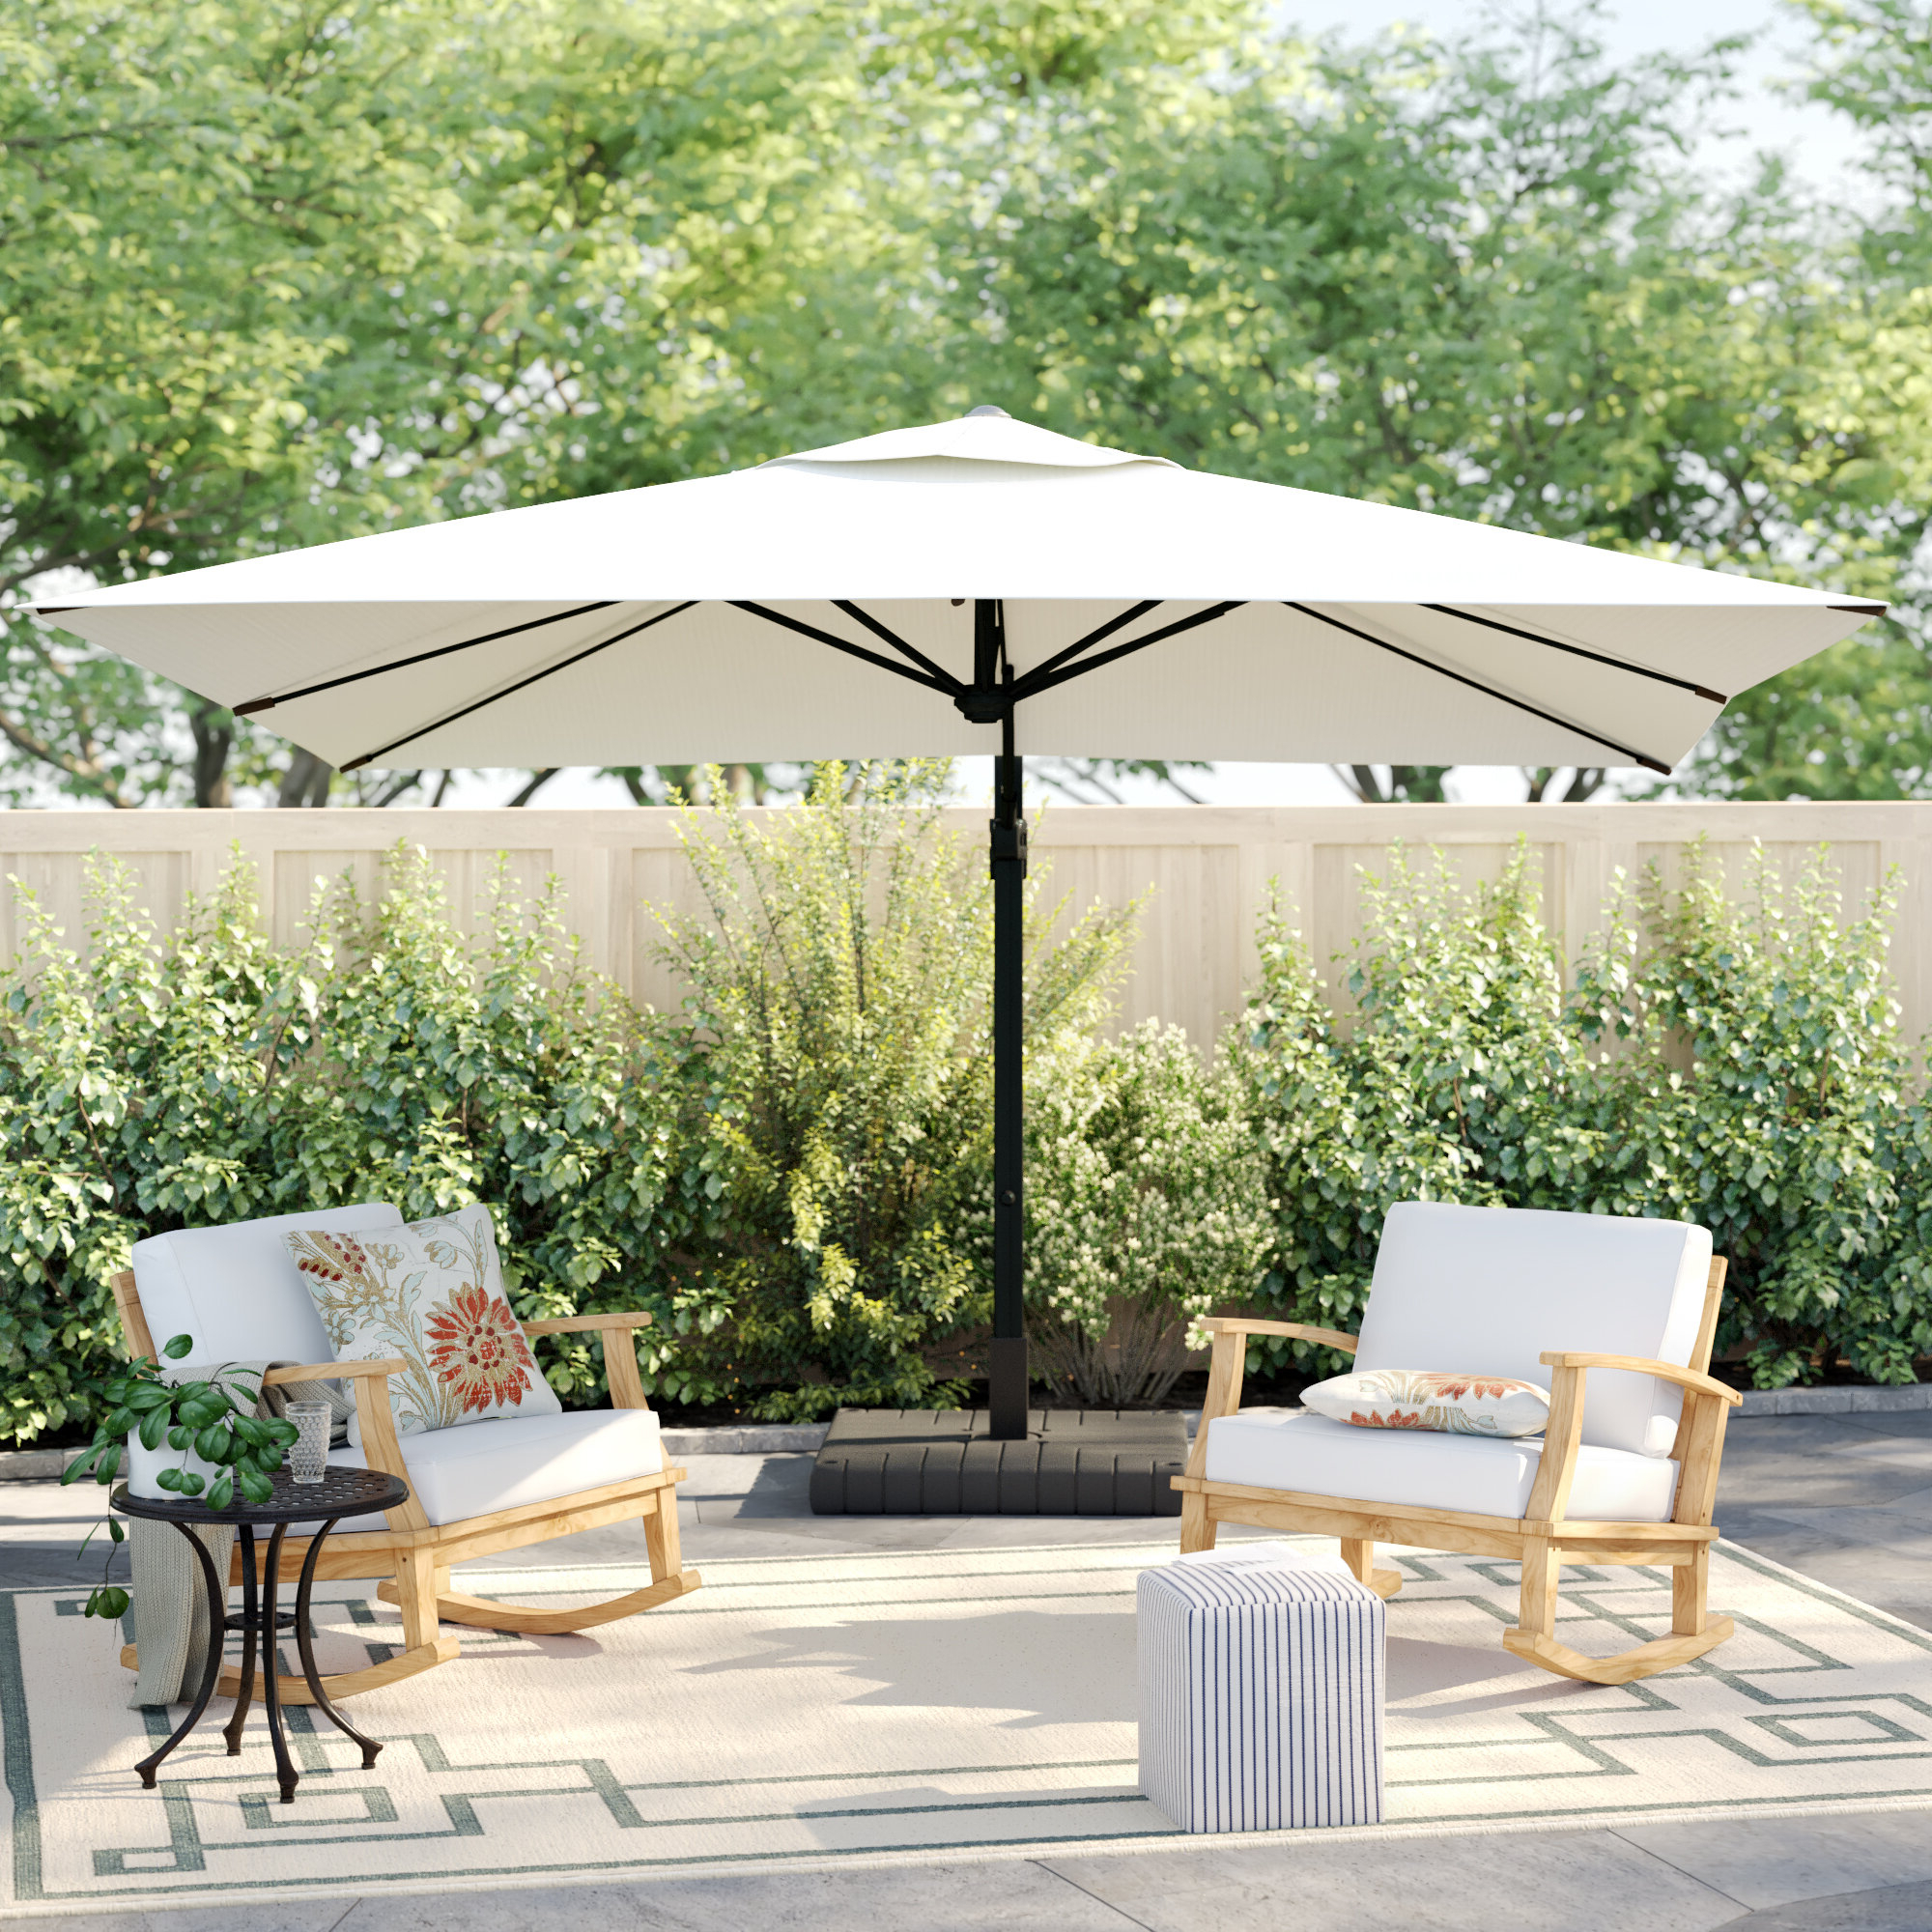 Carlisle 10' Square Cantilever Sunbrella Umbrella With Well Known Spitler Square Cantilever Umbrellas (View 10 of 20)